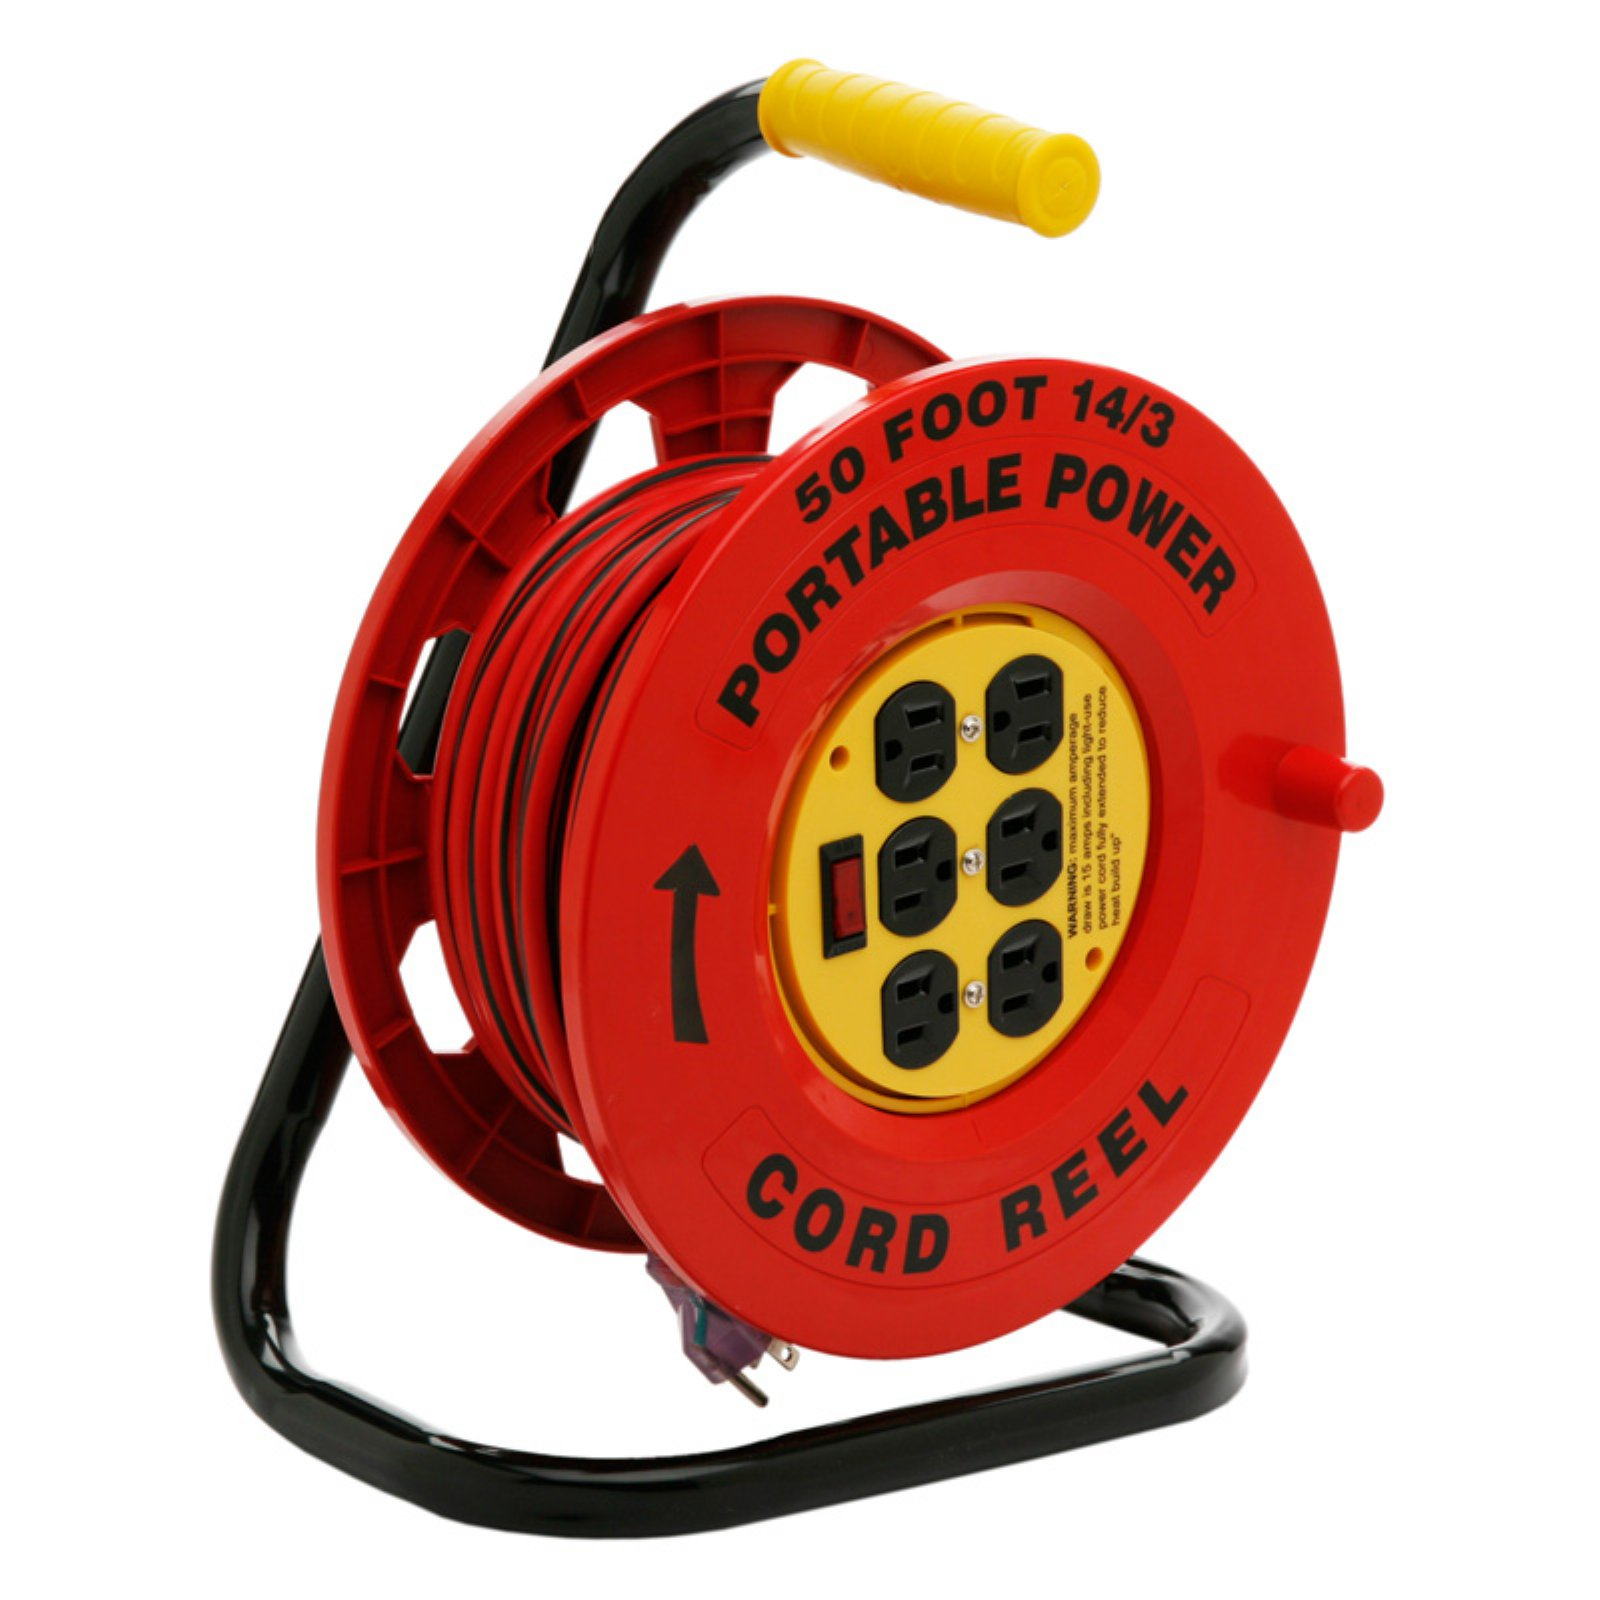 Designers Edge Power Stations 14/3-Gauge Cord Reel with 6 Outlets, 50-Foot